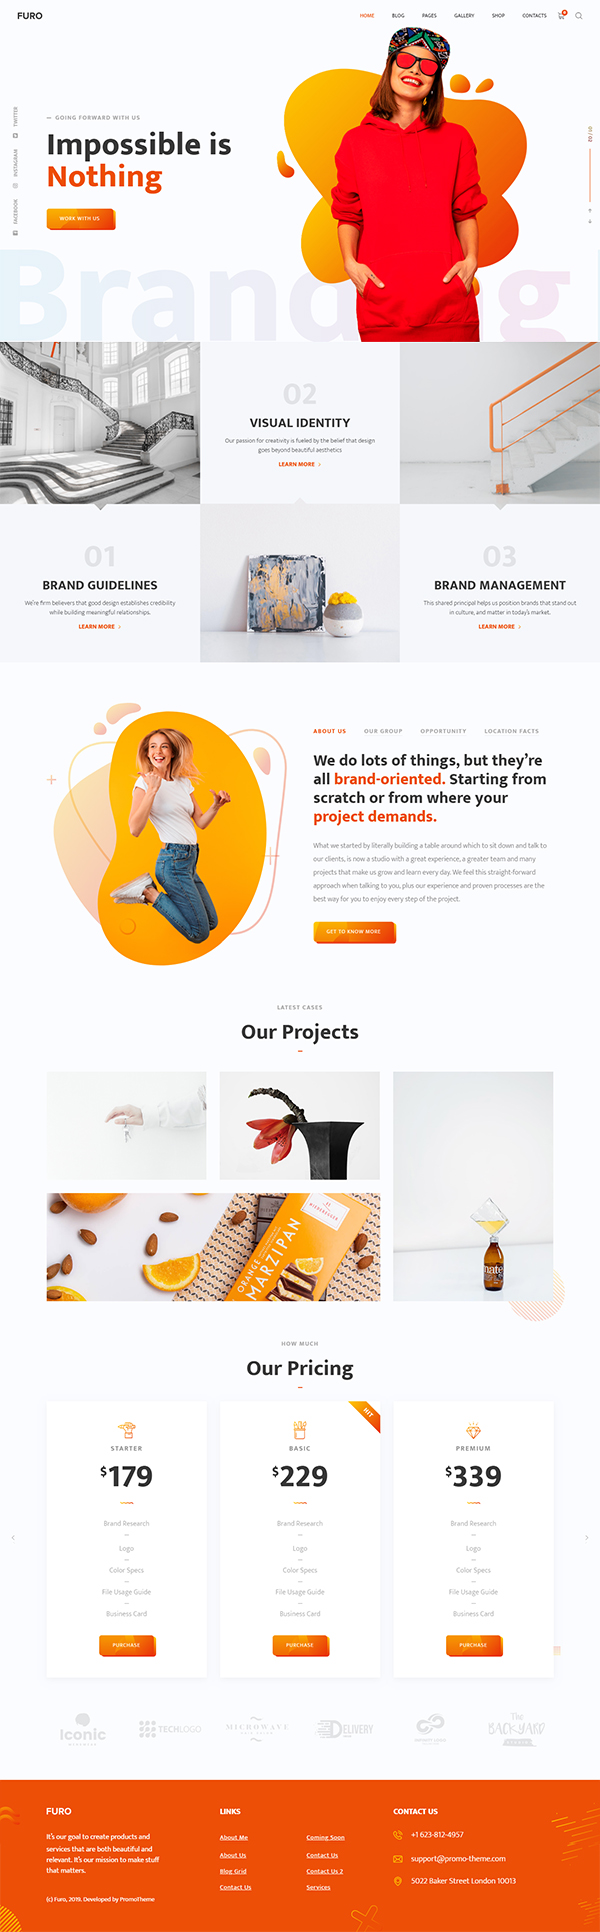 Furo - A creative multi-purpose WordPress theme